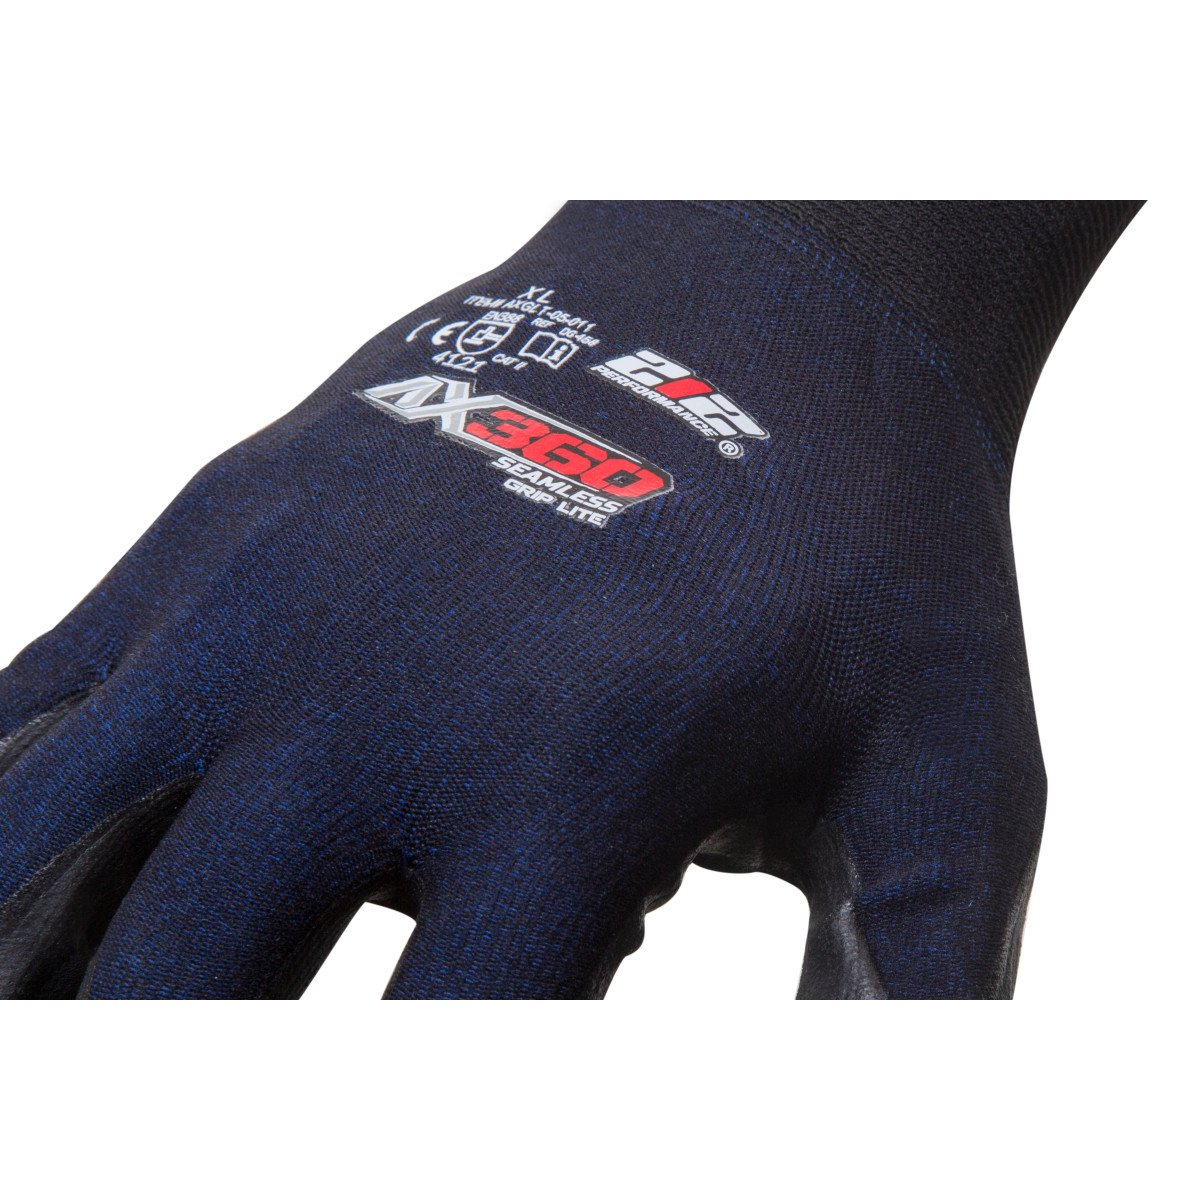 212 Performance Gloves AXGLT-05-010 AX360 Grip Lite Nitrile-dipped Work Glove, 12-Pair Bulk Pack, Large by 219 Performance Gloves (Image #4)